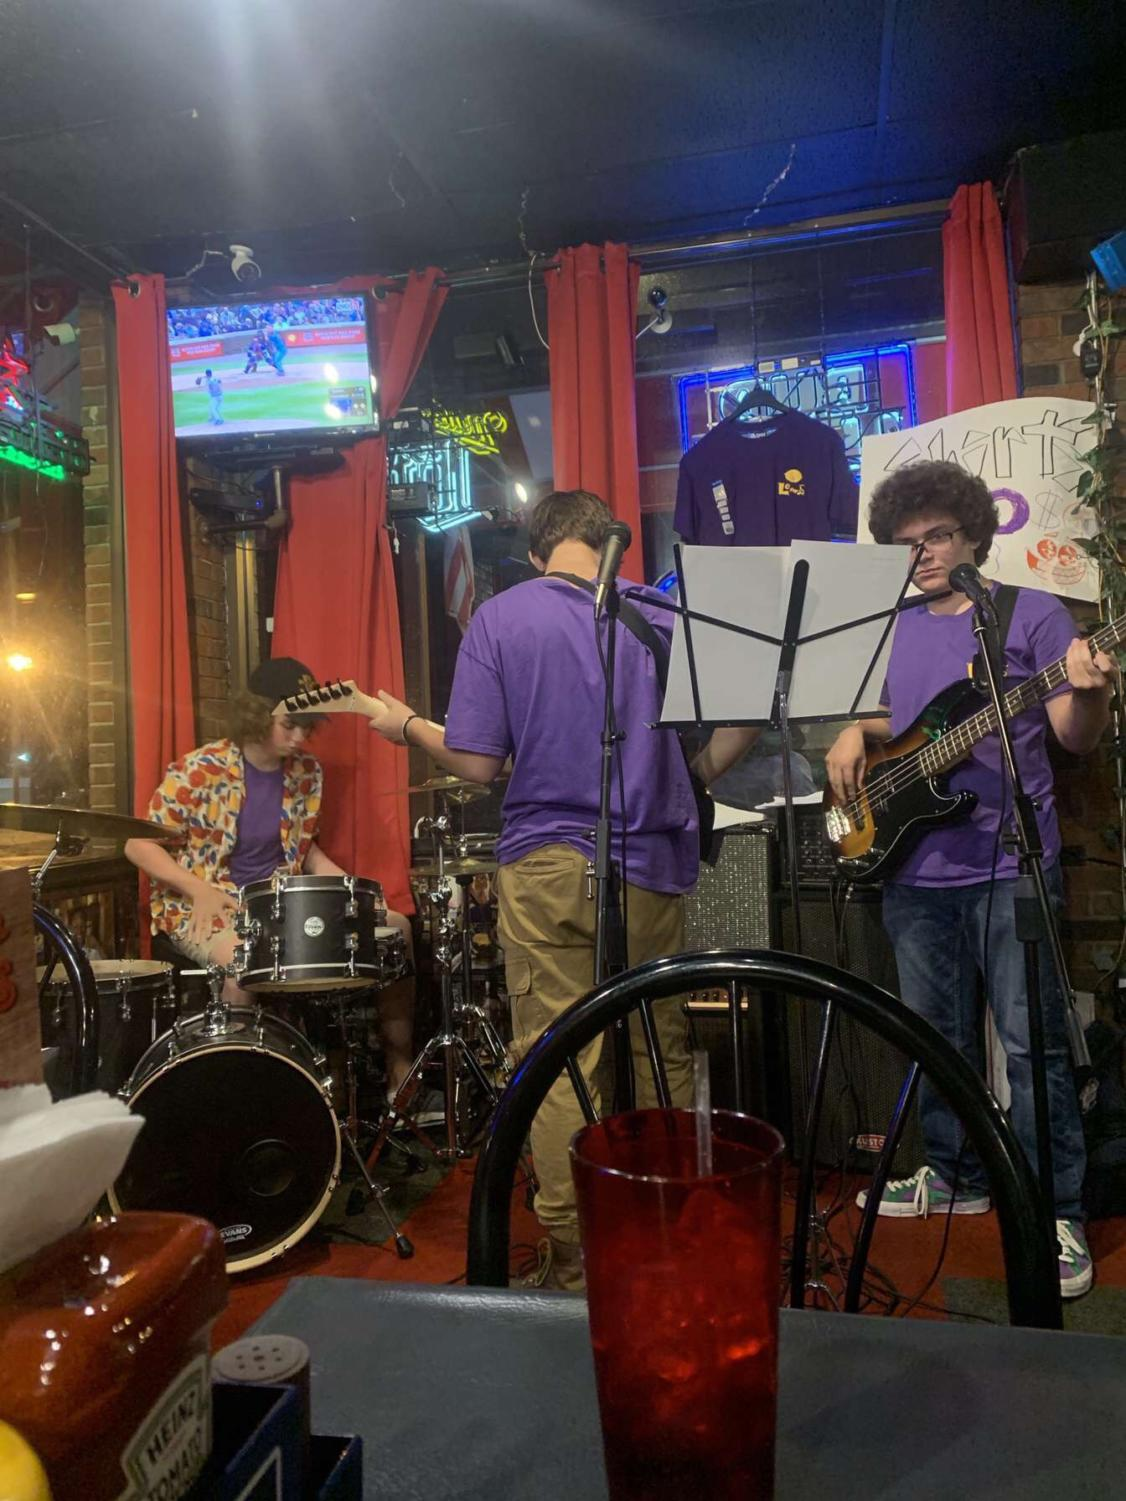 Members of the Lemons play at their gig at Friend's Bar and Grill.